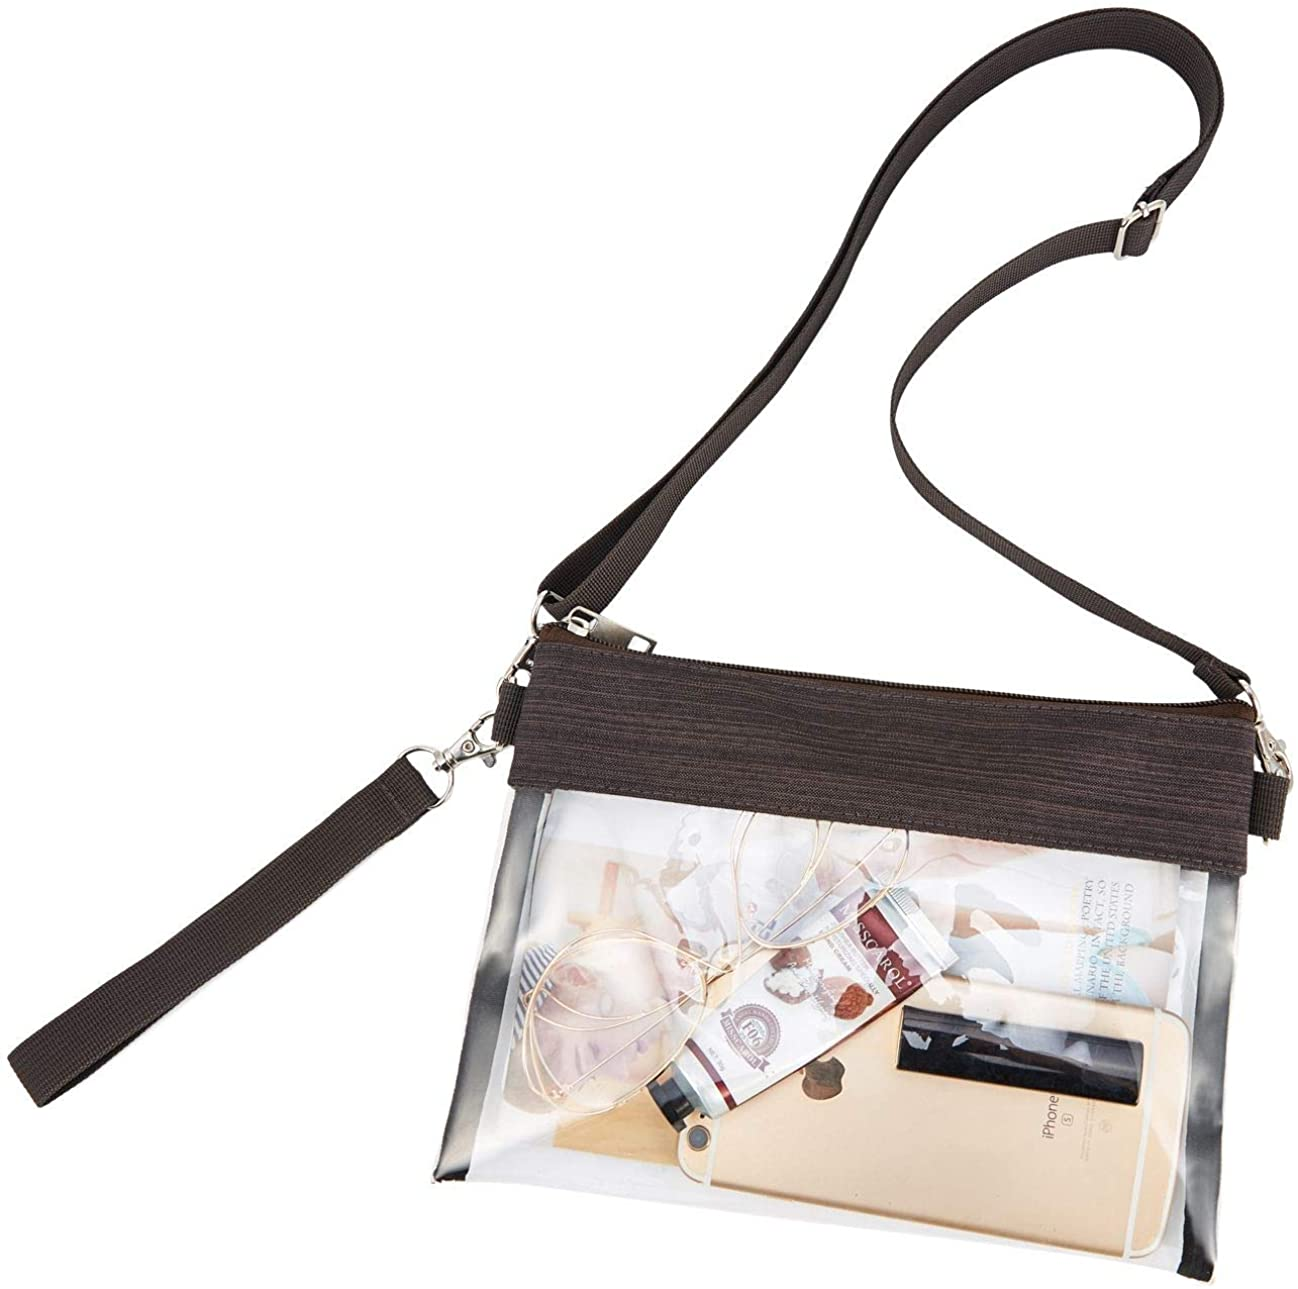 GreenPine Clear Crossbody Purse Bag - NFL,NCAA Stadium Approved Clear Tote Bag with Adjustable Shoulder Strap (Brown)